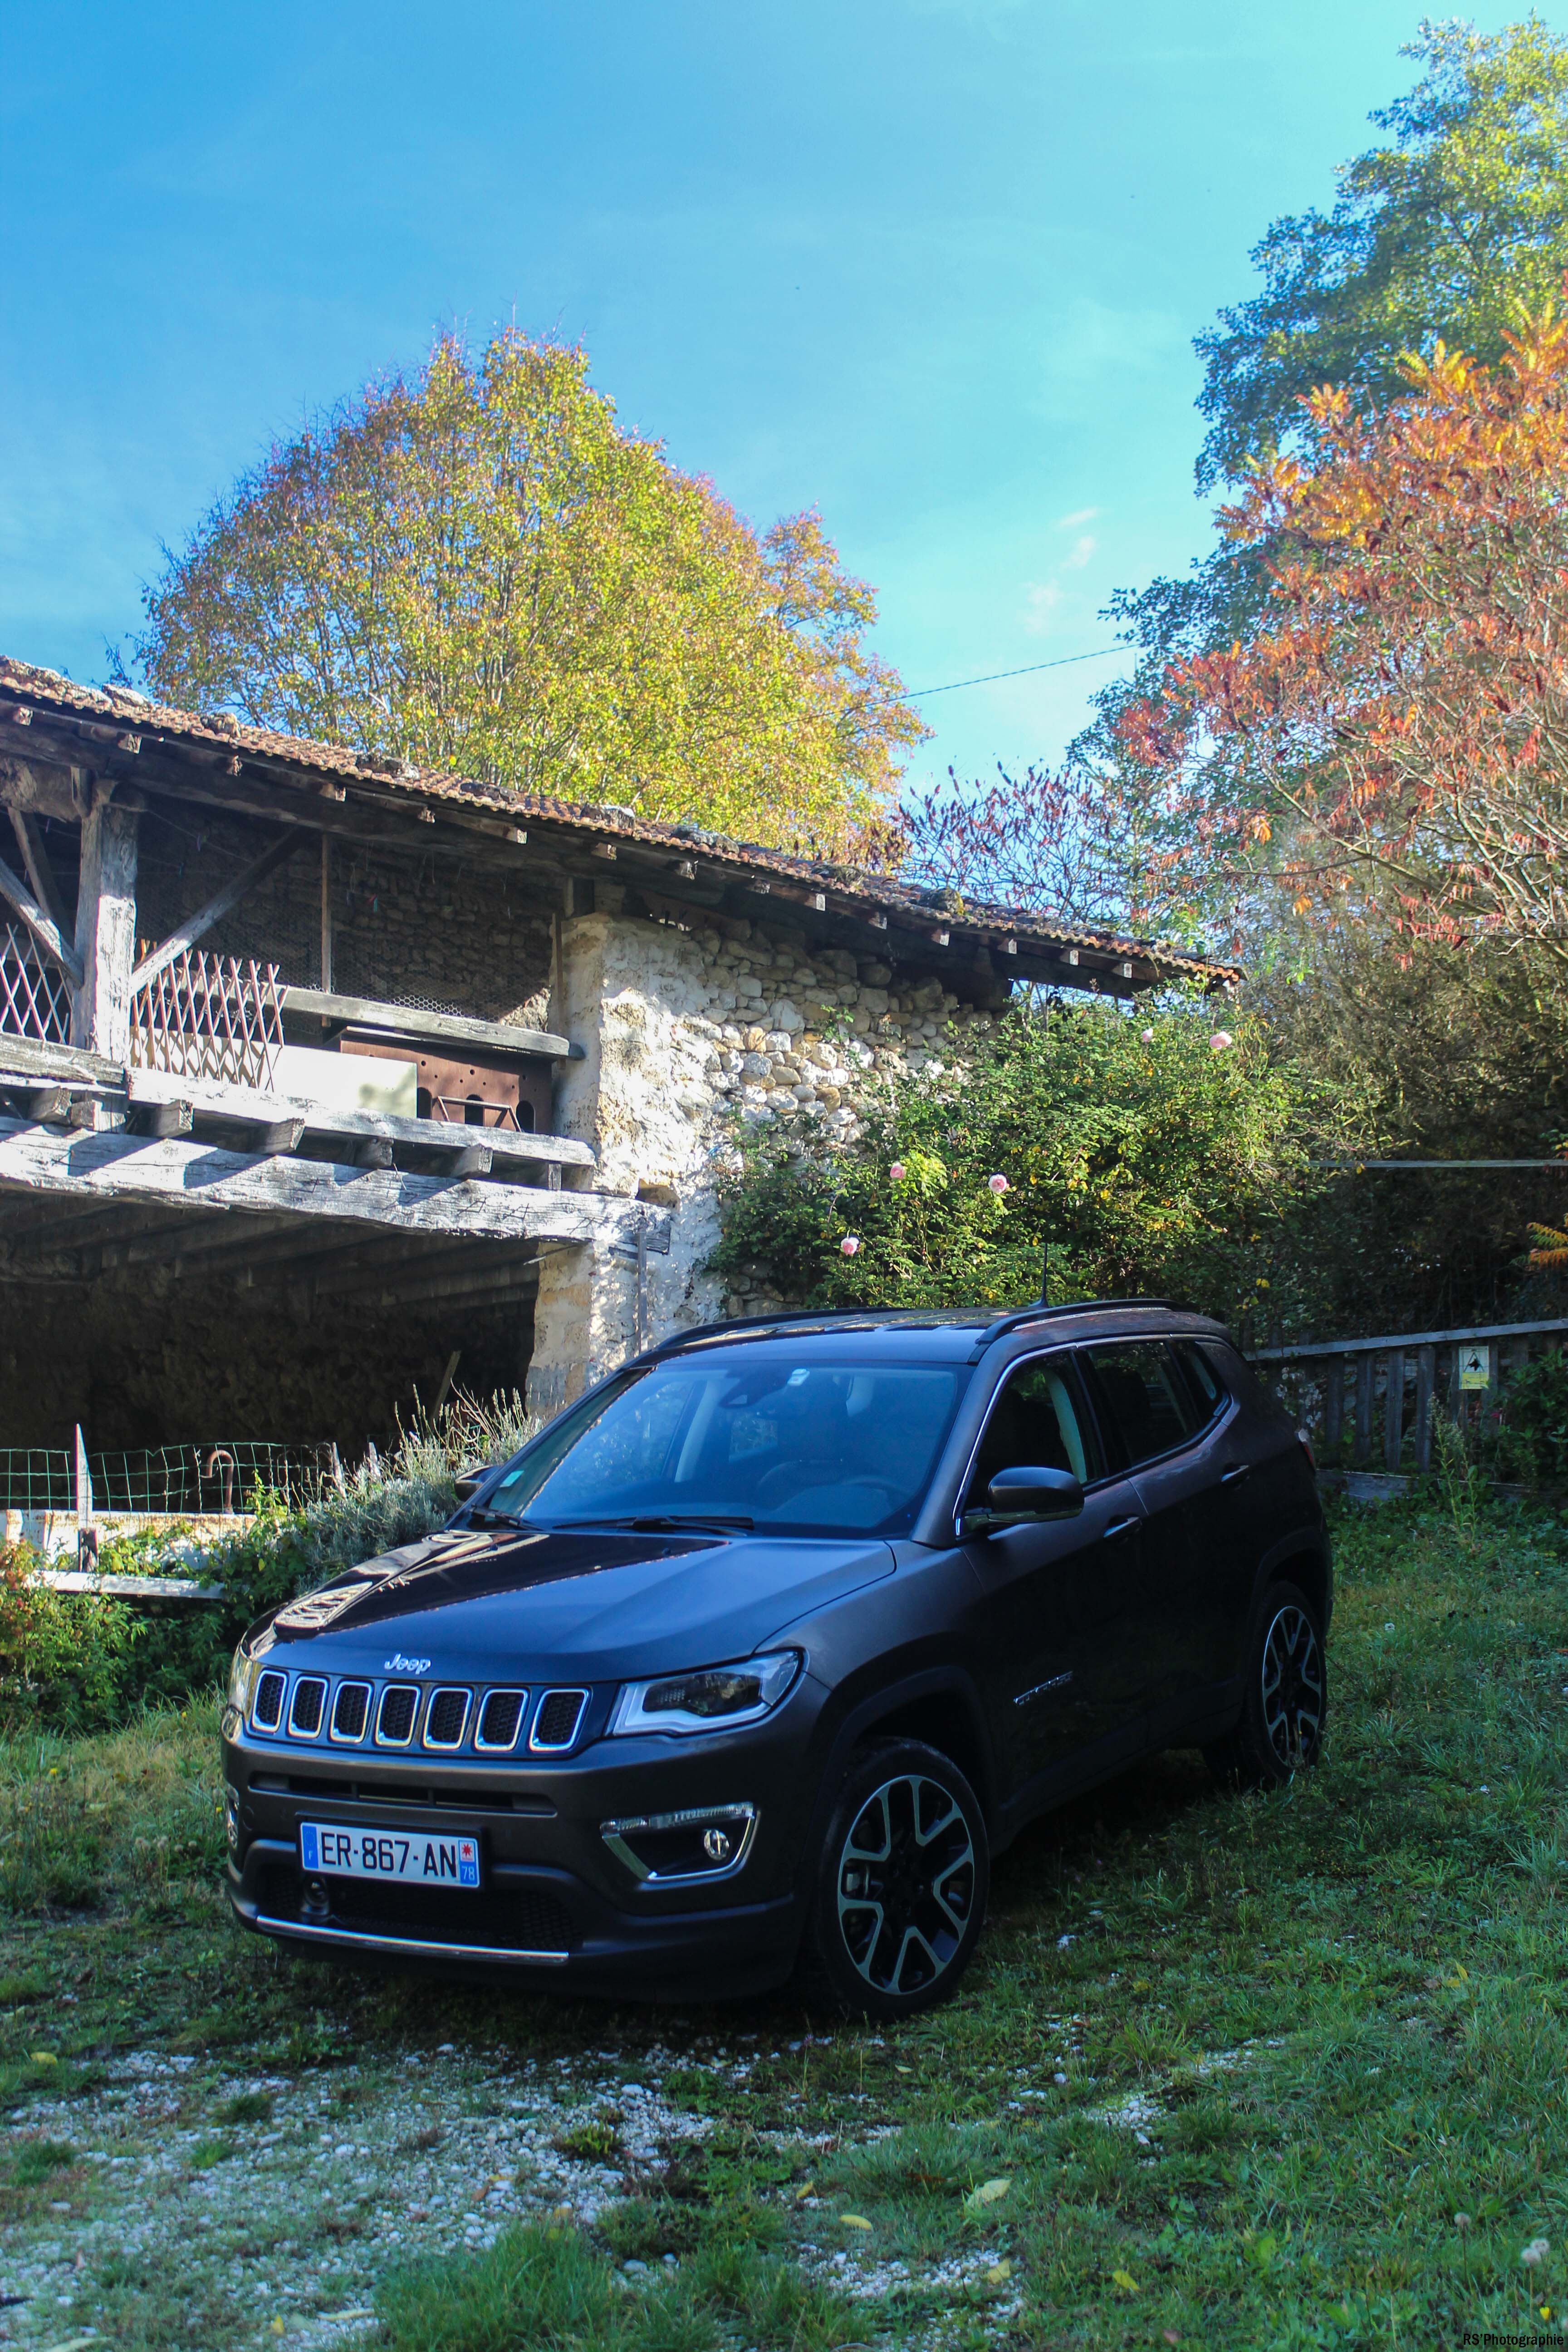 jeepcompass9-jeep-compass-avant-front-Arnaud Demasier-RSPhotographie